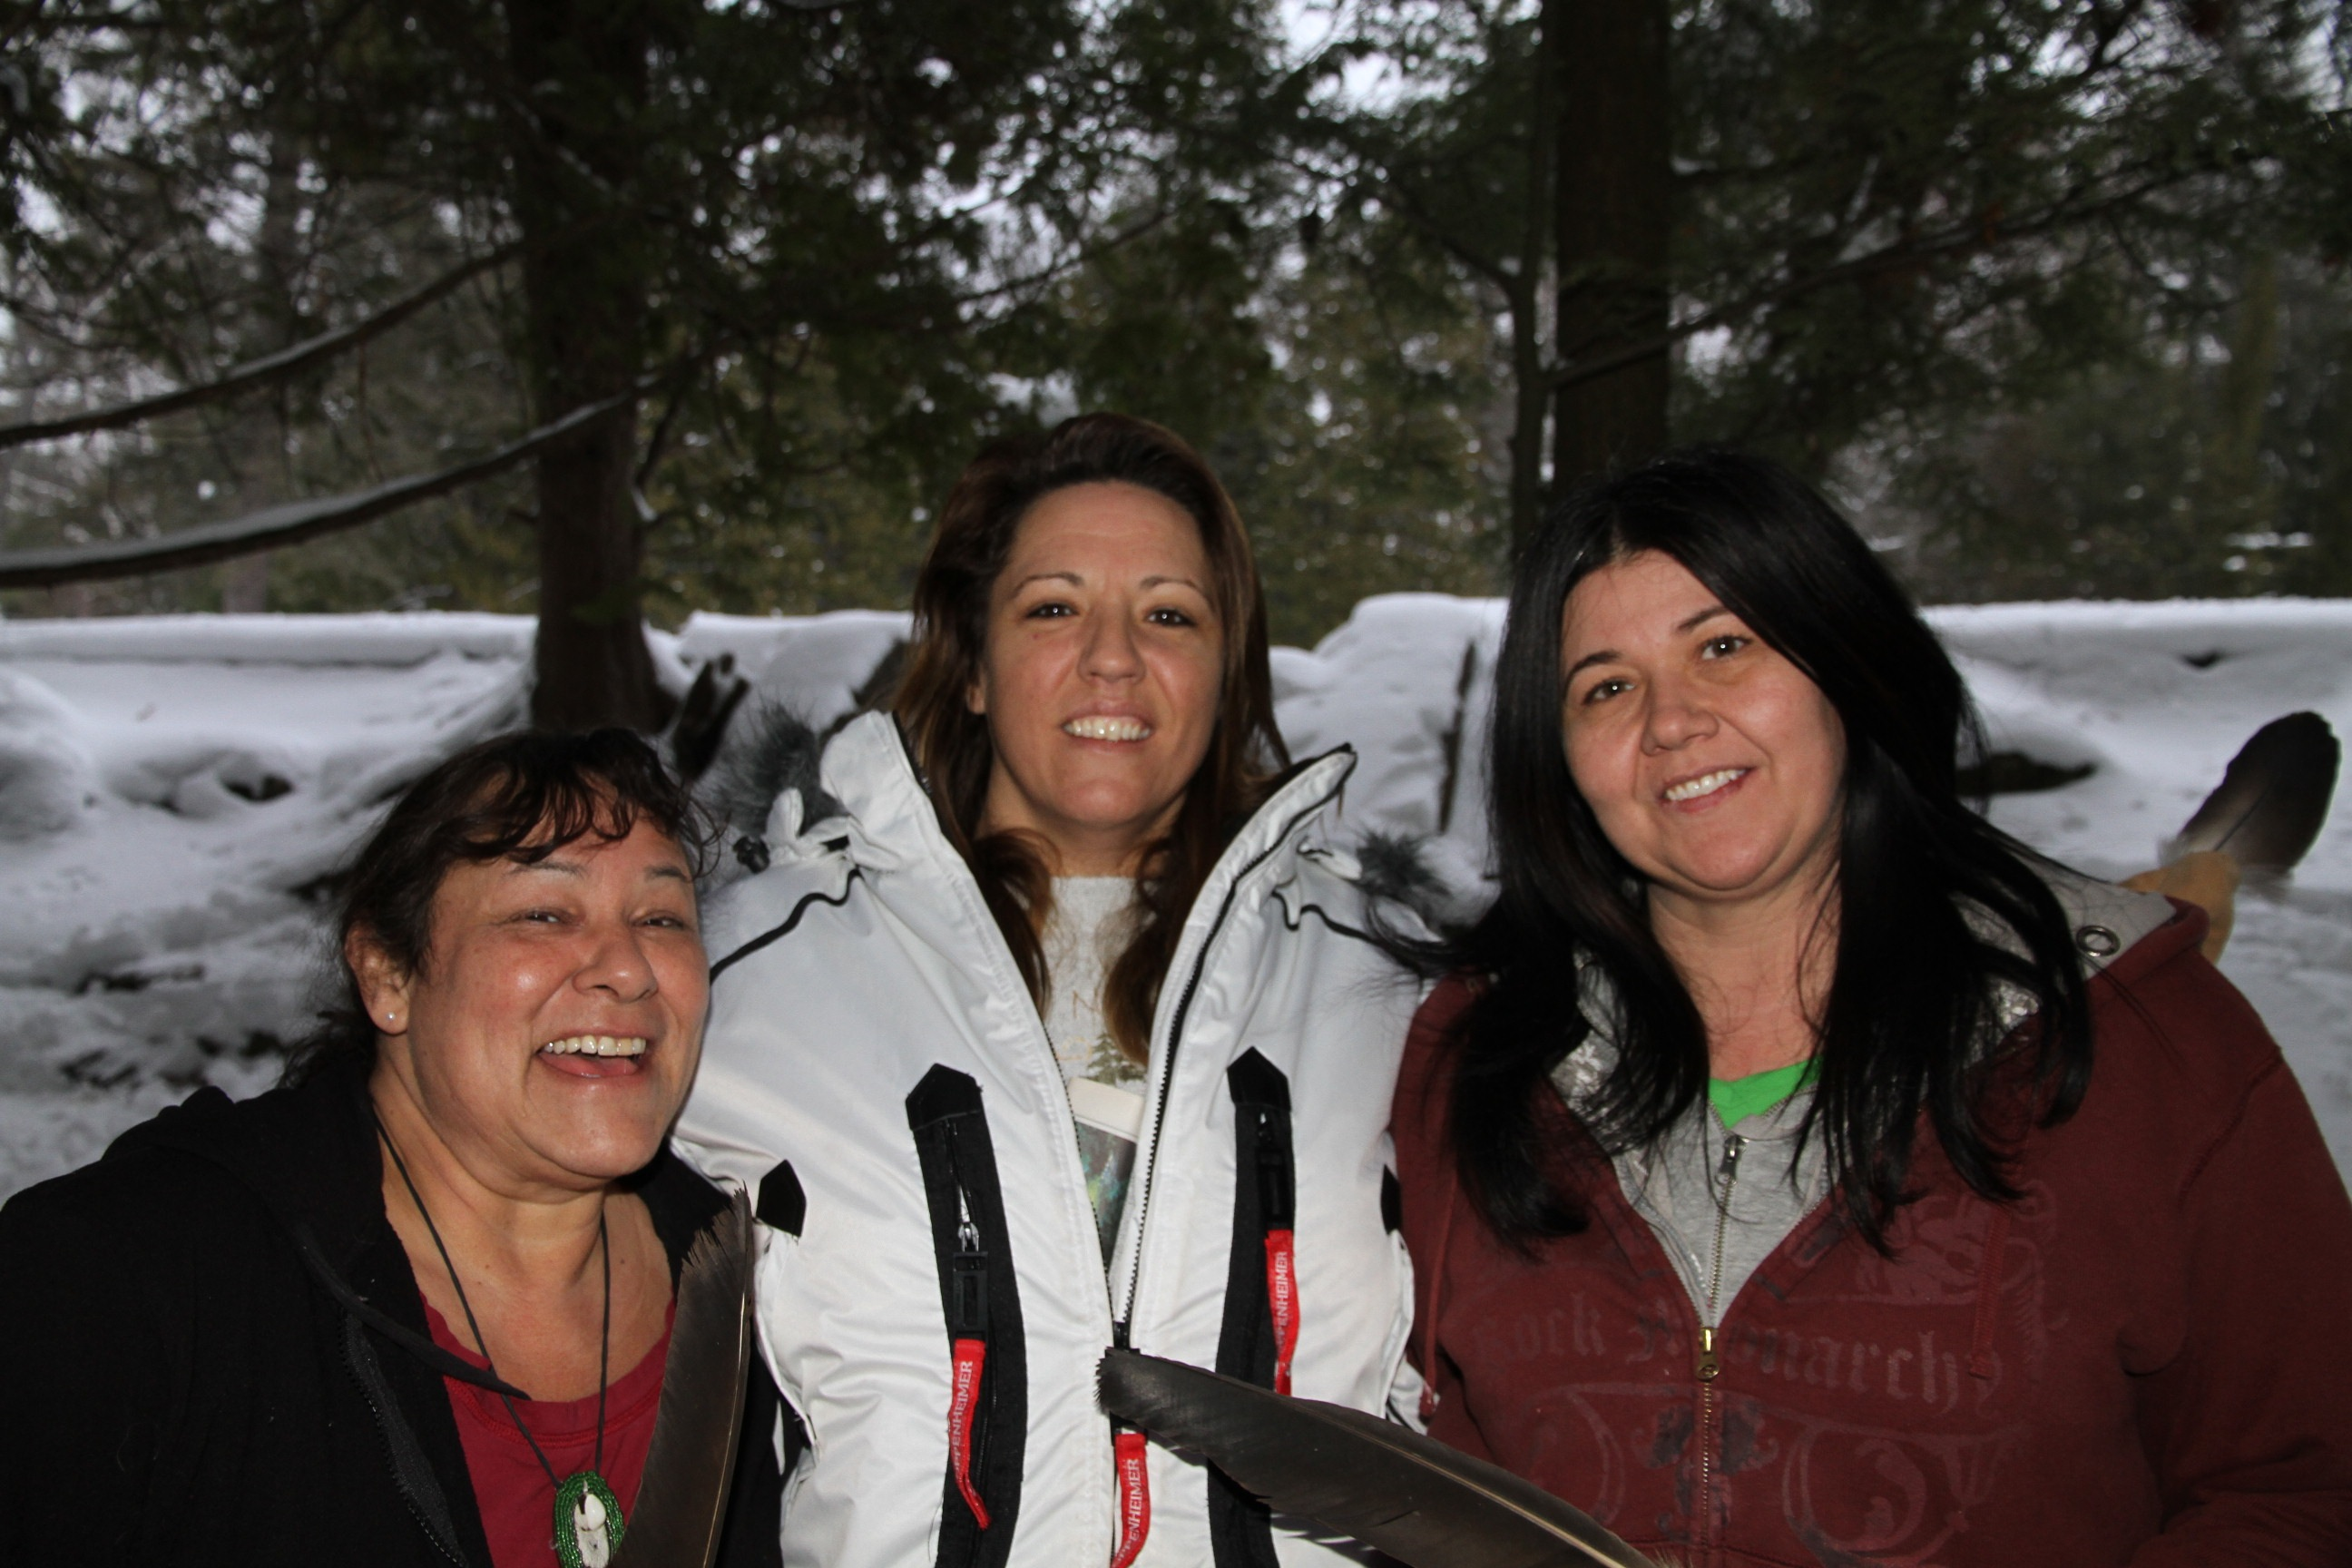 Beth Brass E;;son, Kimberly Rose Edwards and Sylvie Simard at Springwater Park in December - Anne Nahuis photo